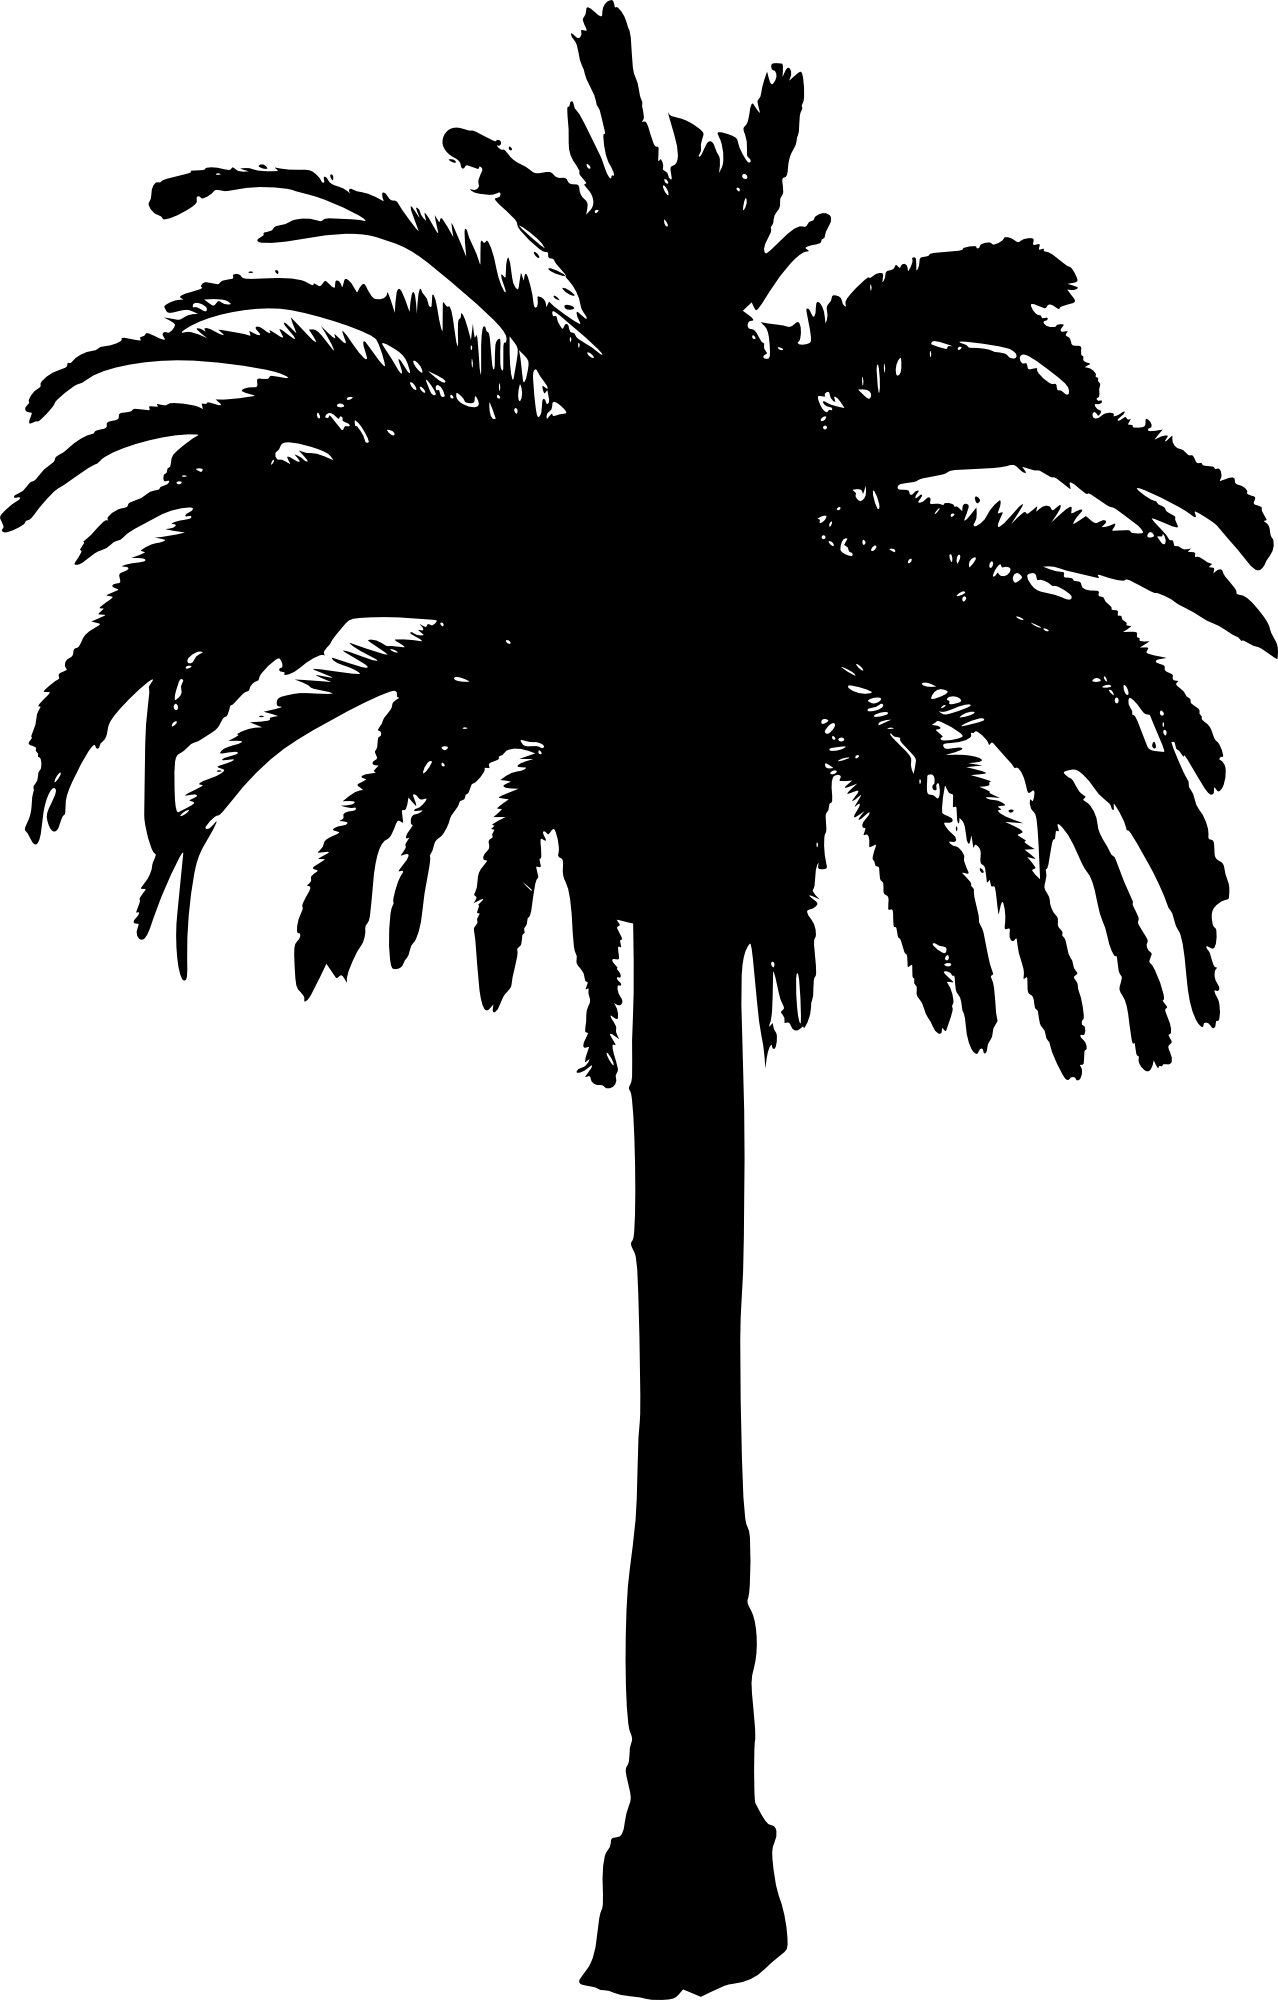 image black and white library Silhouette Palm Trees at GetDrawings